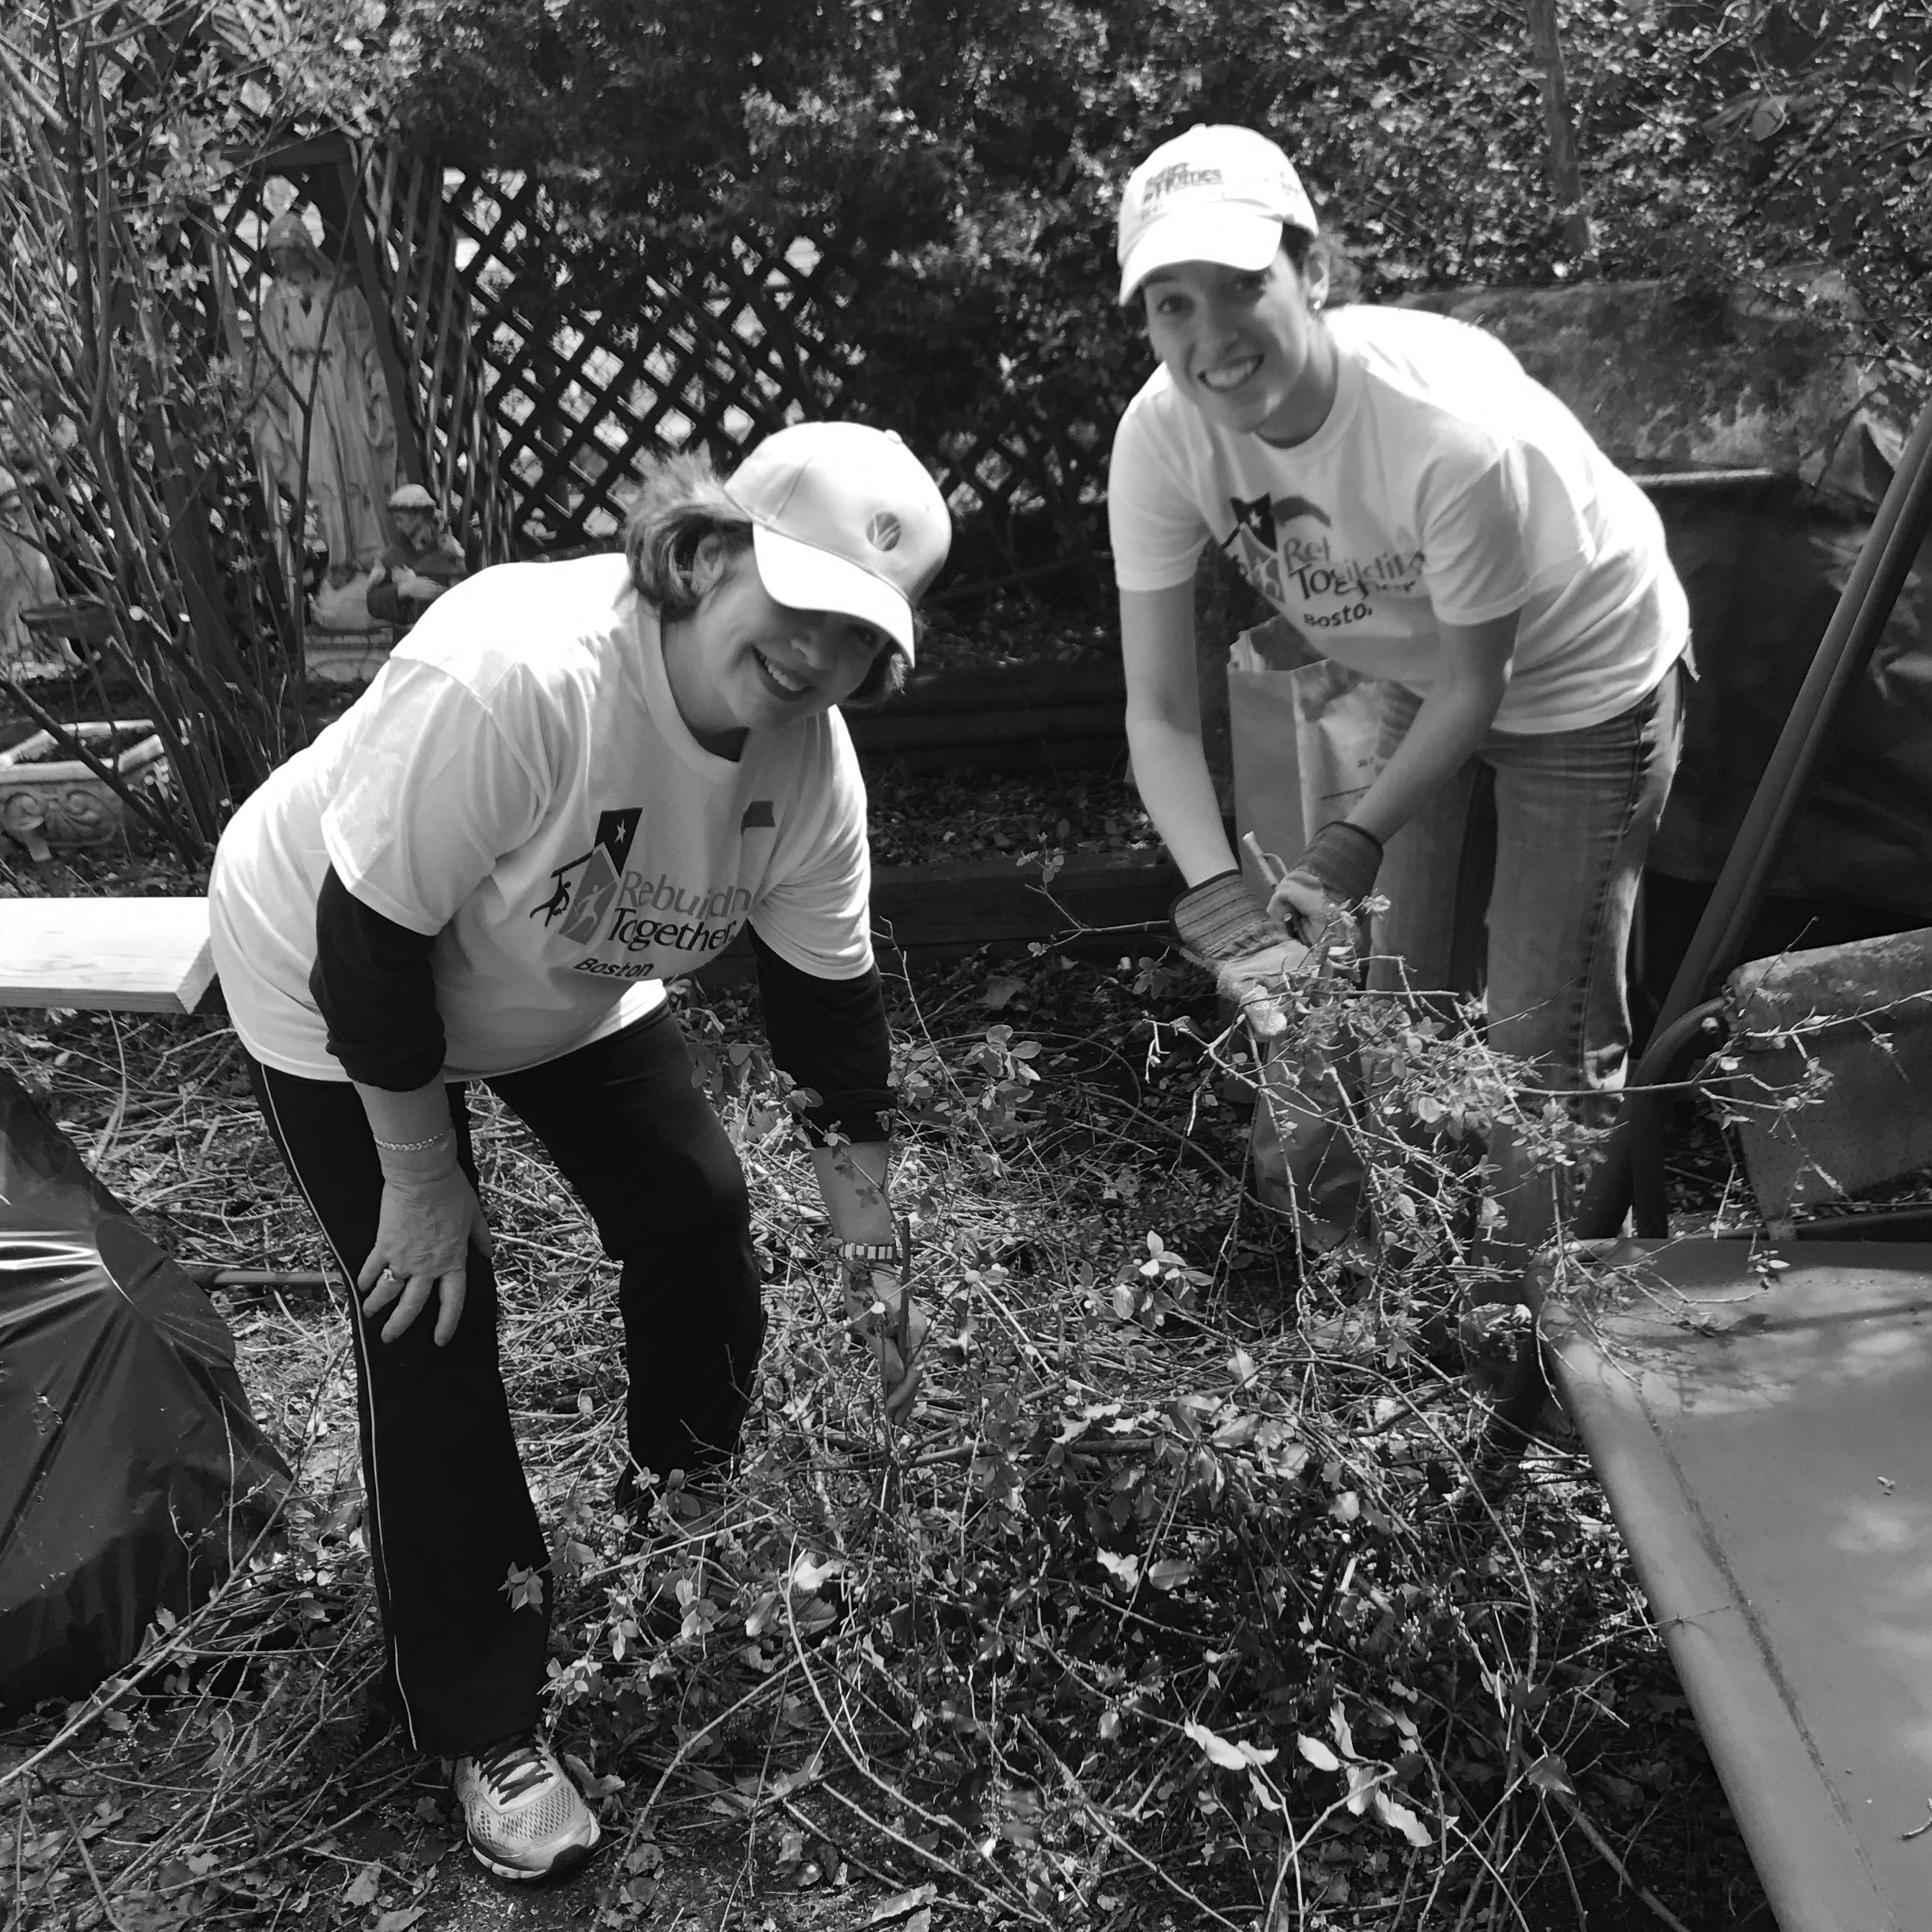 Volunteers gardening at the Dorchester Ave Repair